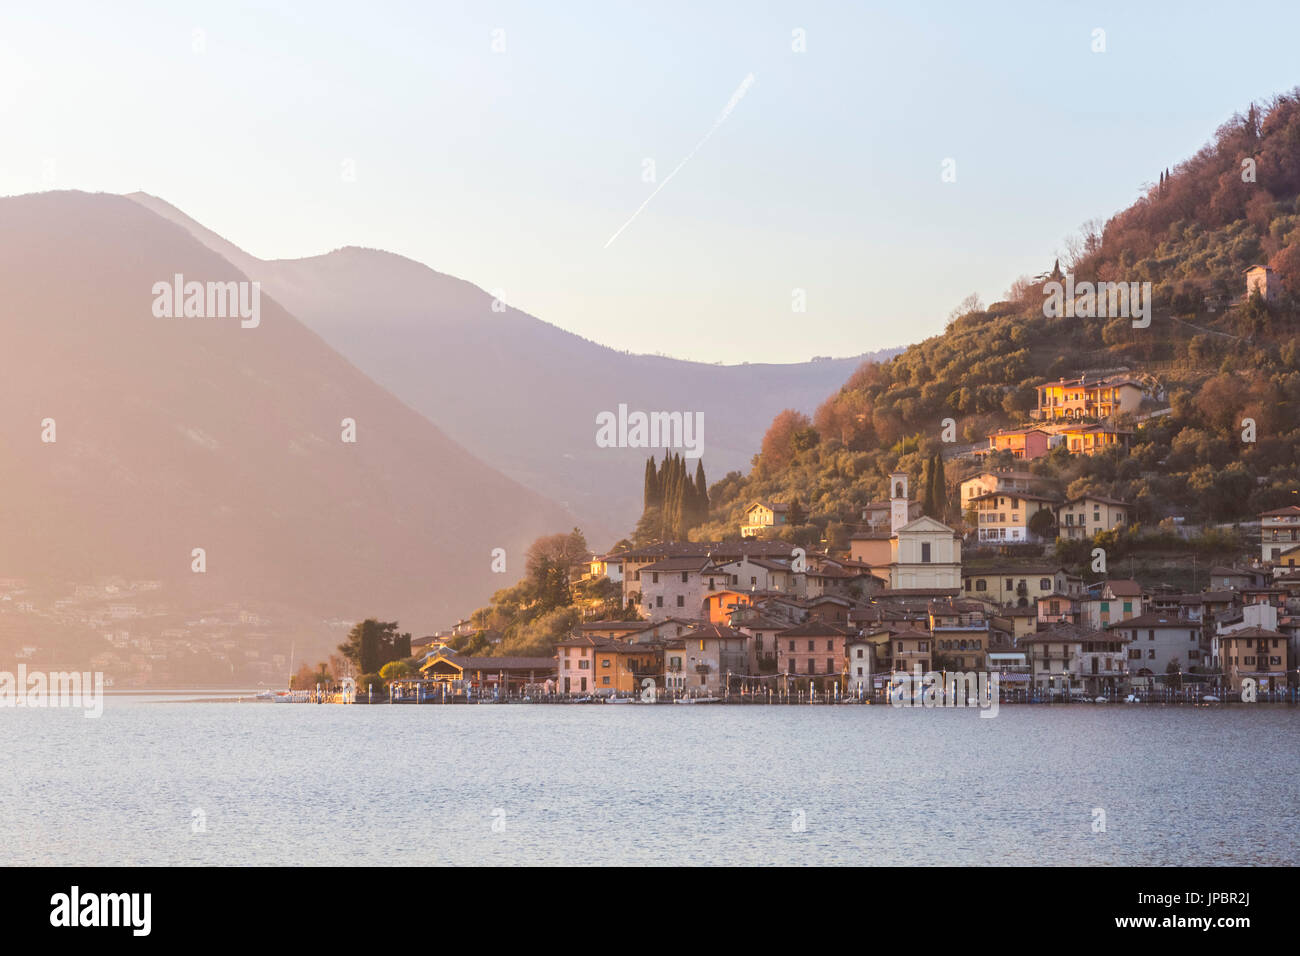 The town of Peschiera Maraglio during a winter sunset, Brescia Province, Iseo Lake, Lombardy, Italy. Stock Photo